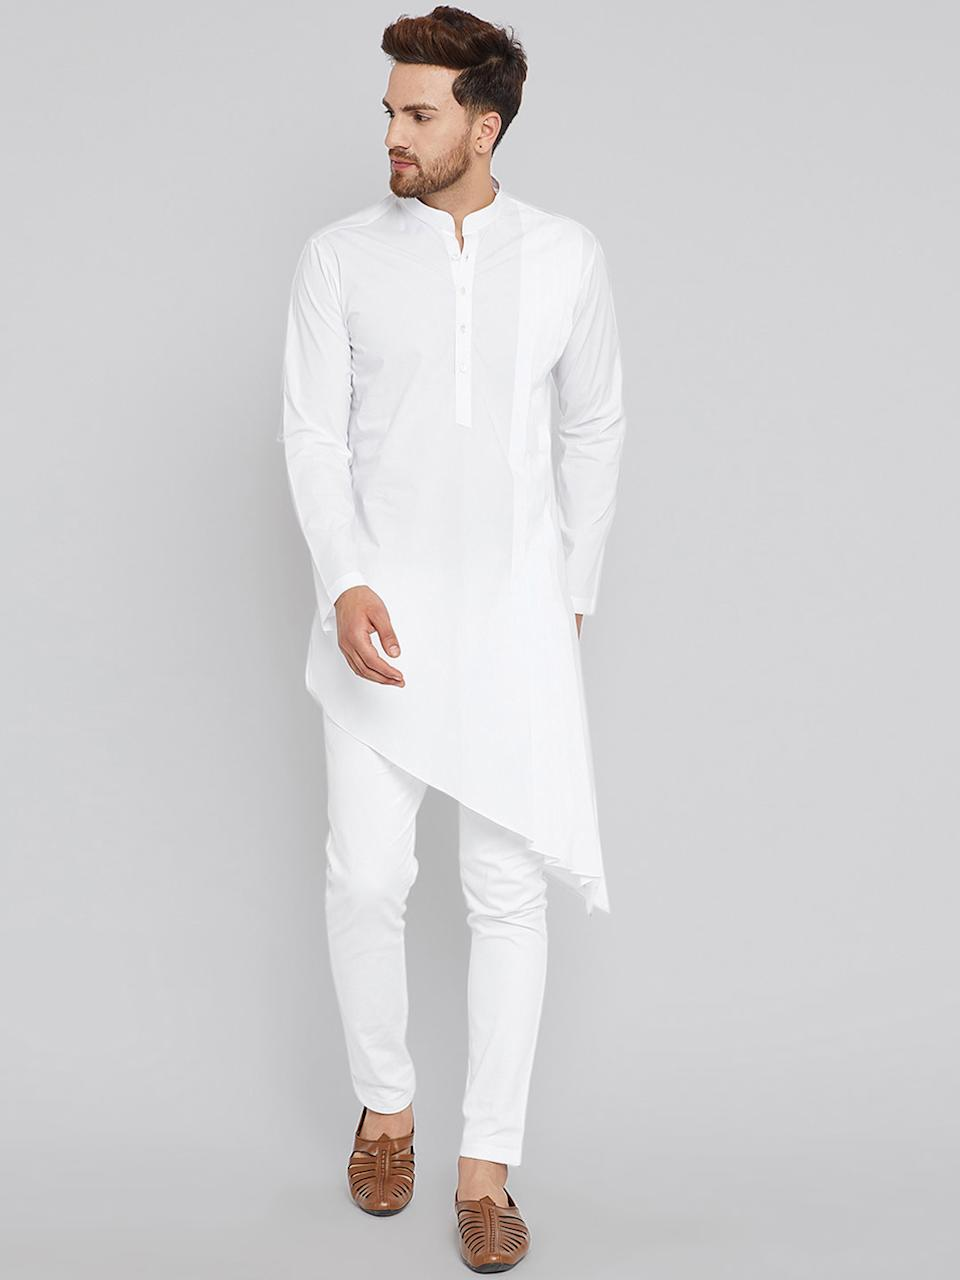 "<a href=""https://fave.co/2UZ614e"" rel=""nofollow noopener"" target=""_blank"" data-ylk=""slk:BUY HERE"" class=""link rapid-noclick-resp"">BUY HERE</a> White solid A-line kurta, has a mandarin collar, long sleeves, asymmetric hem, side slits, by See Designs from Myntra, for a discounted price of Rs. 1,249."